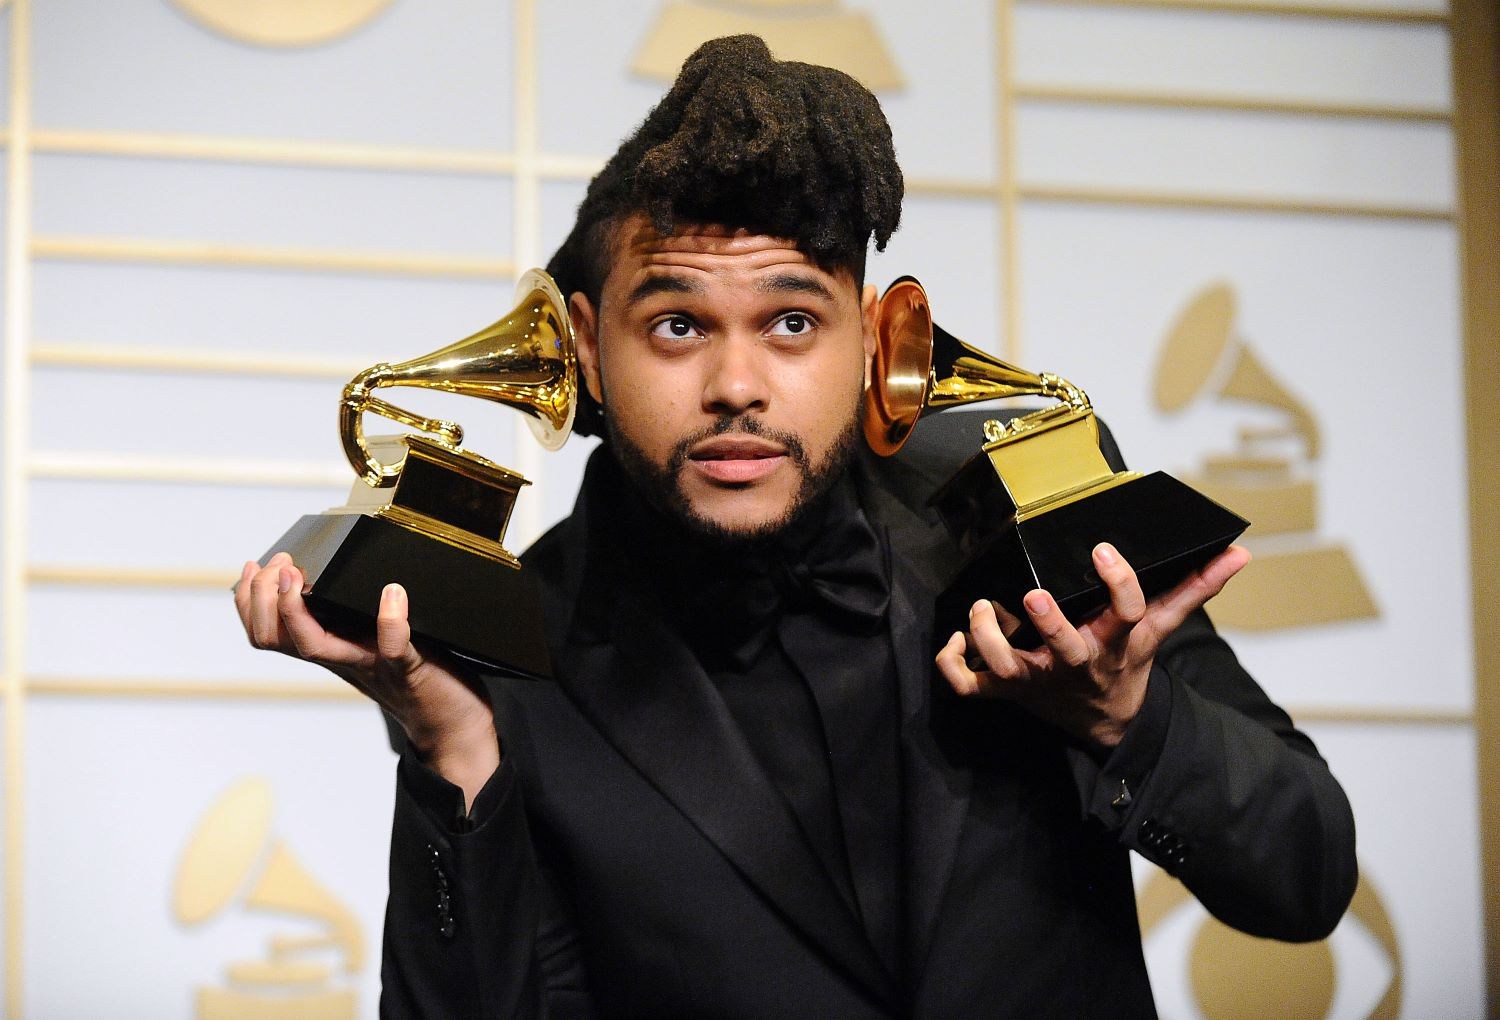 The Weeknd at the 2016 Grammy Awards